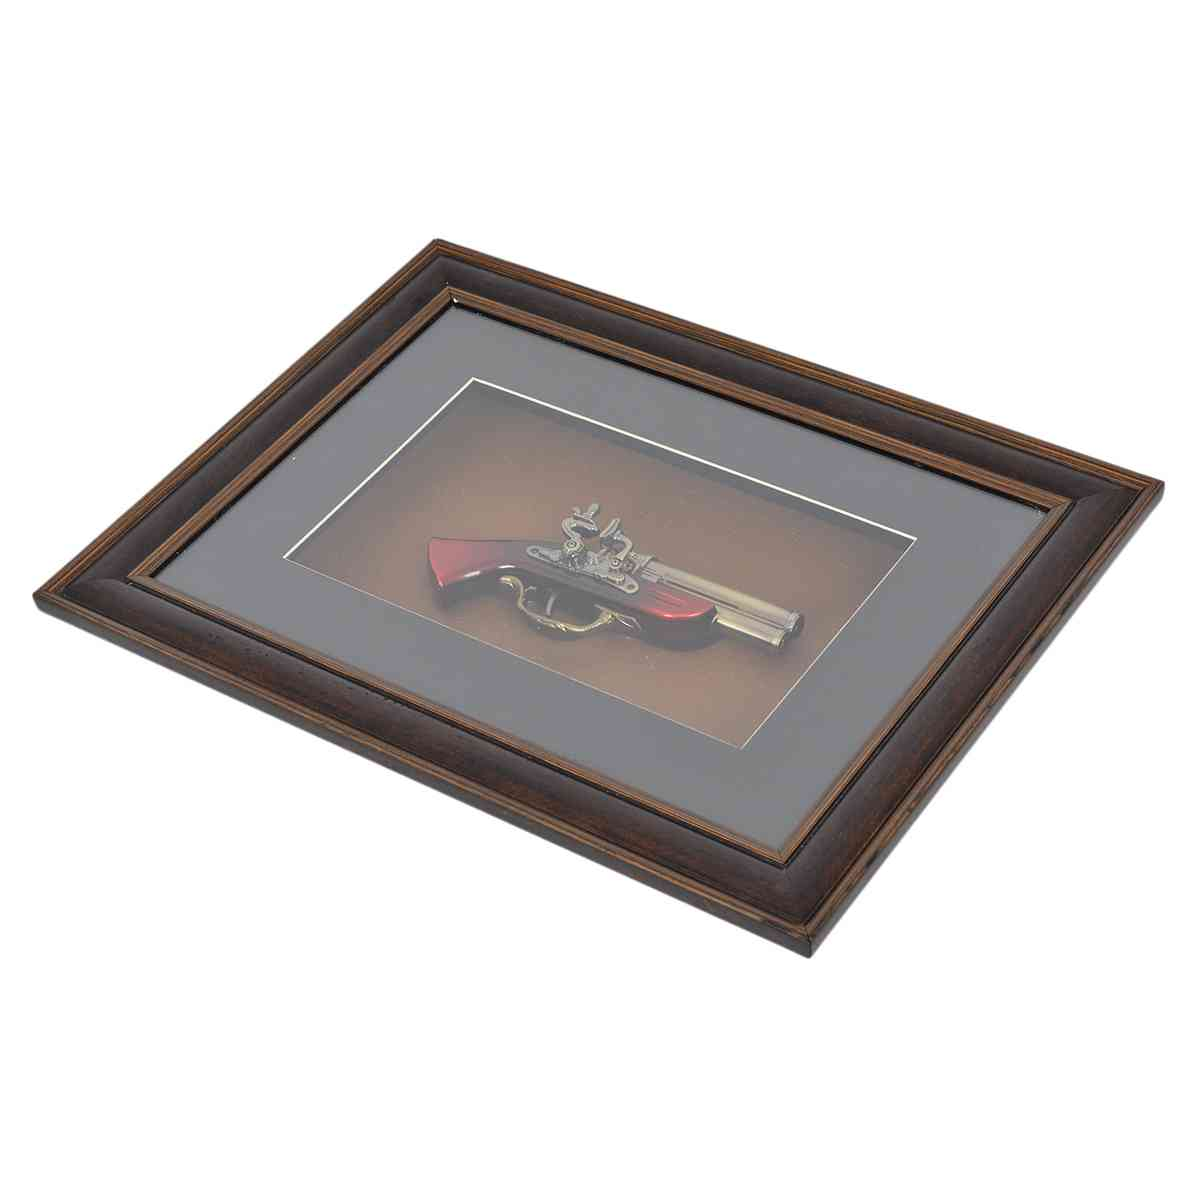 Asaan Buy 3D Object Frame (16 Inch Width x 12 Inch Height x 3 Inch Depth)